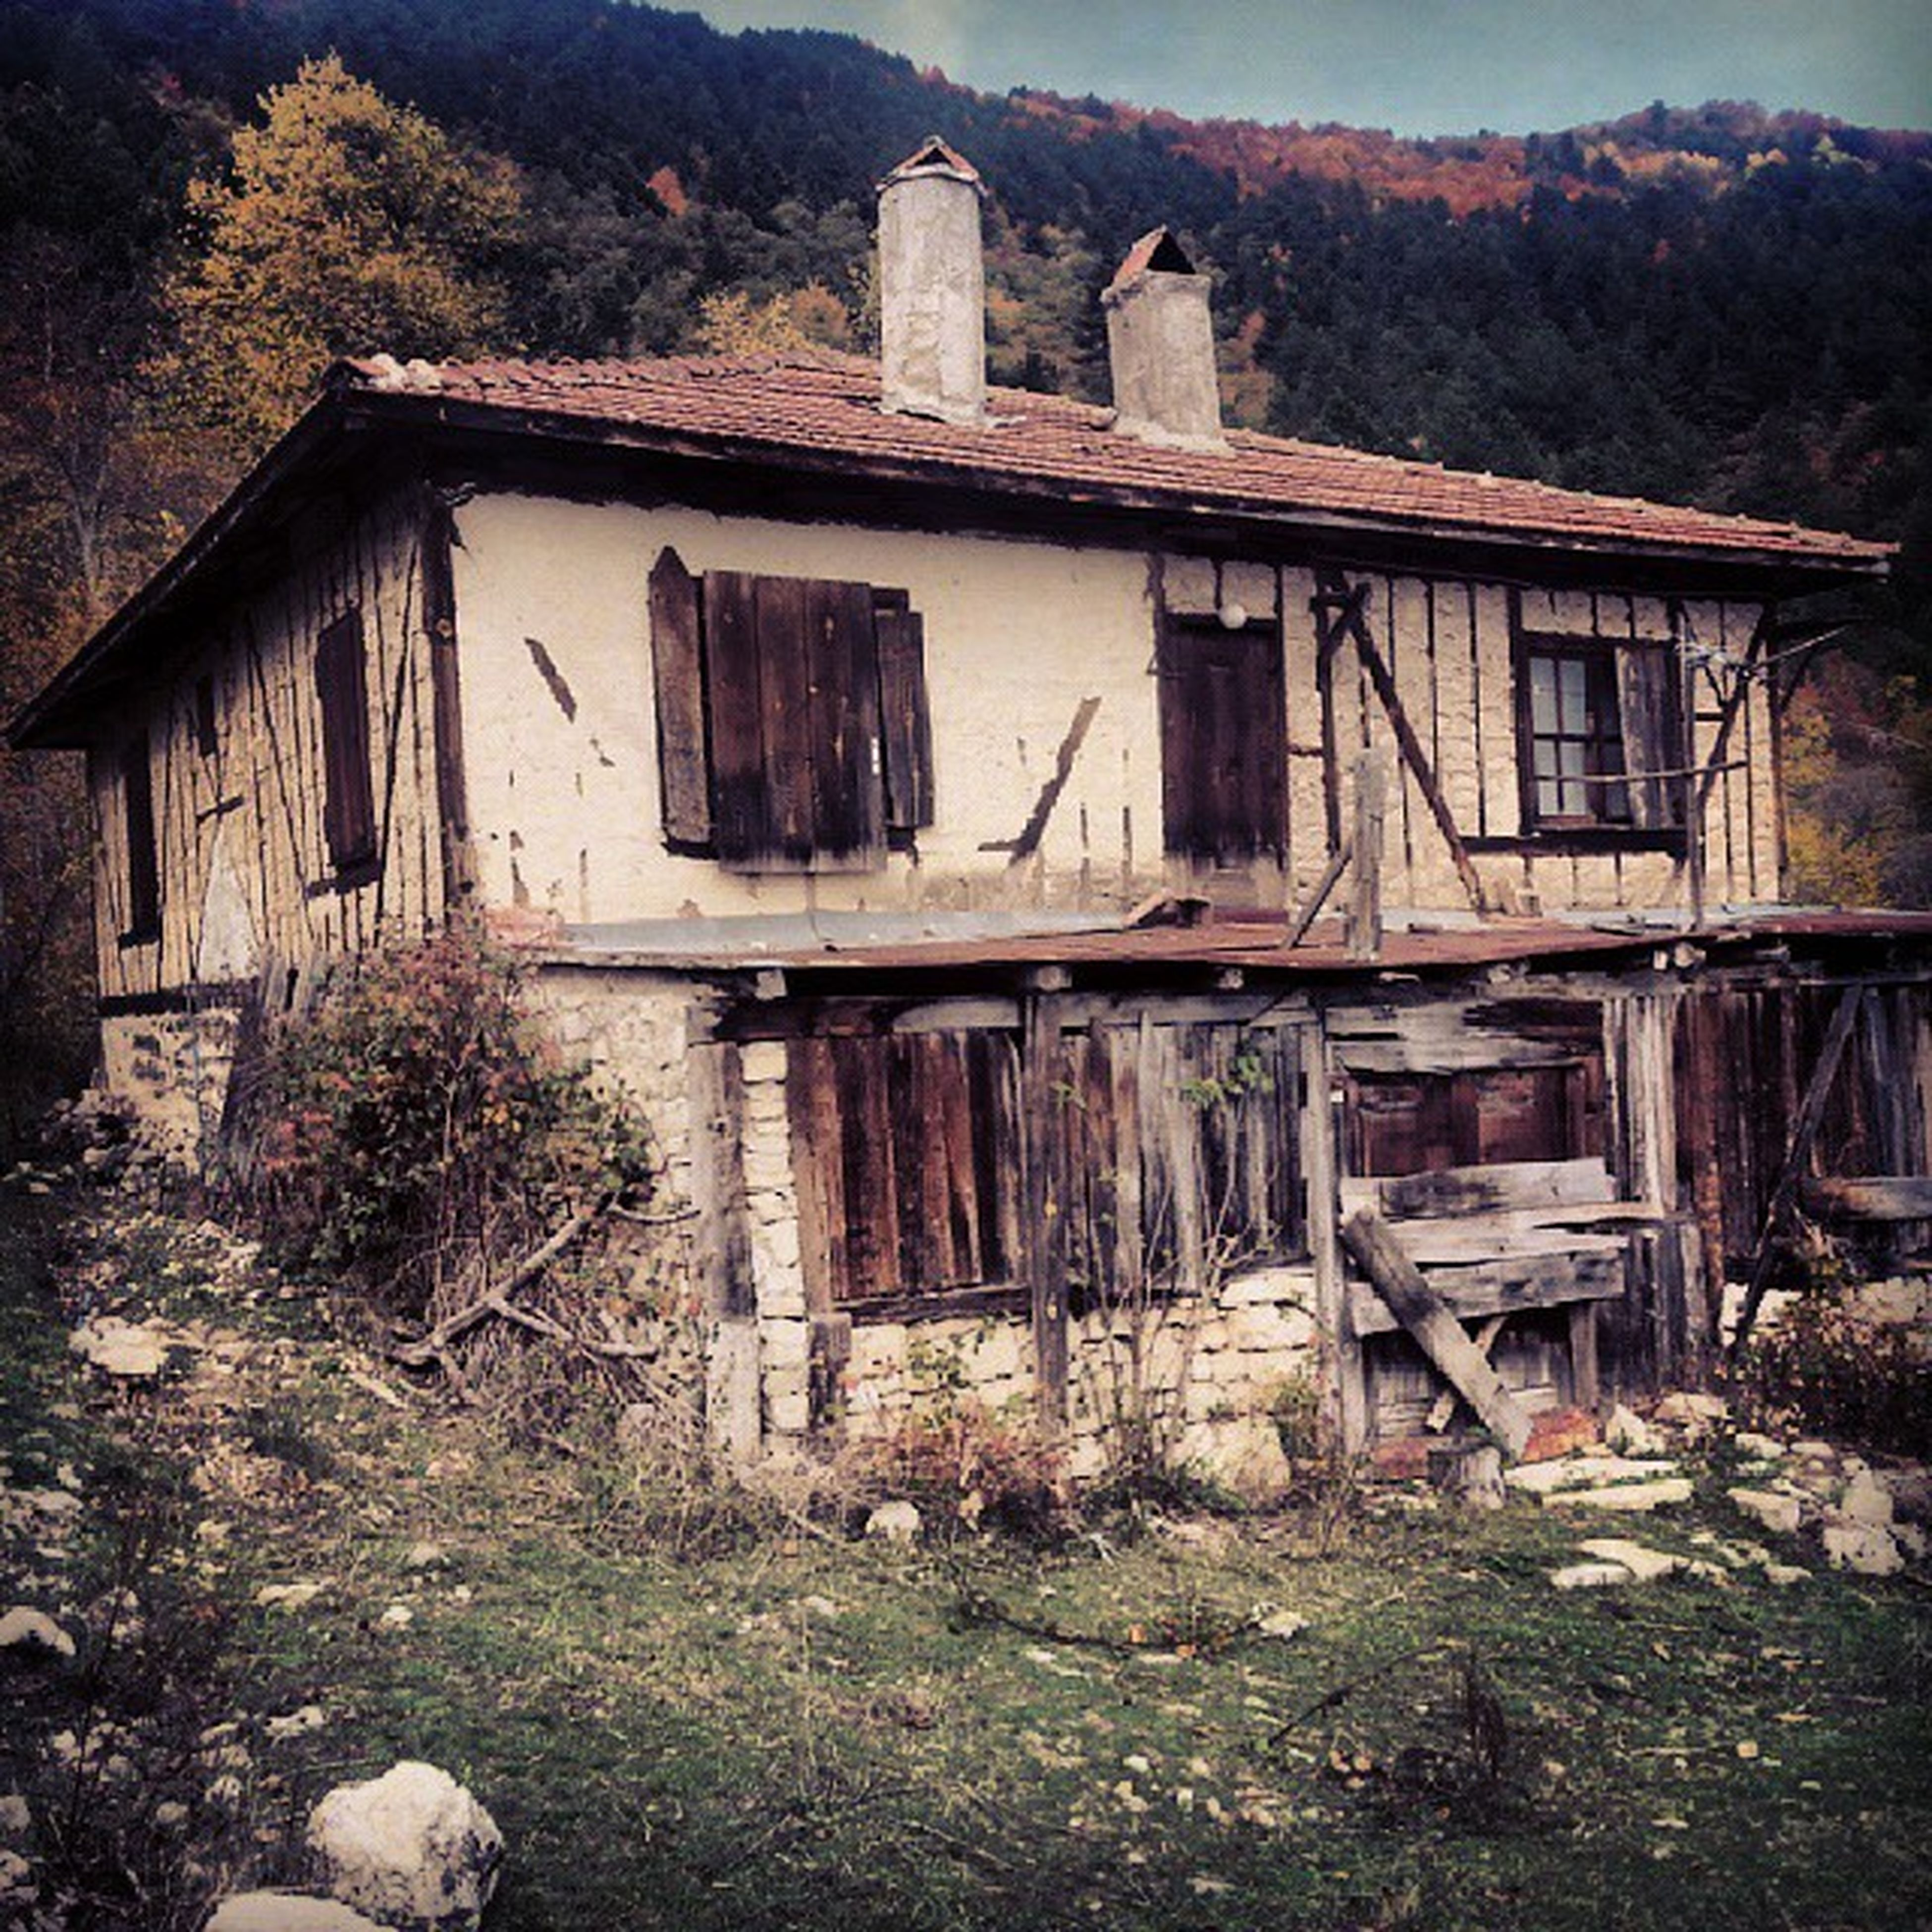 abandoned, architecture, built structure, obsolete, building exterior, damaged, run-down, deterioration, old, house, bad condition, weathered, destruction, ruined, wood - material, residential structure, broken, day, window, no people